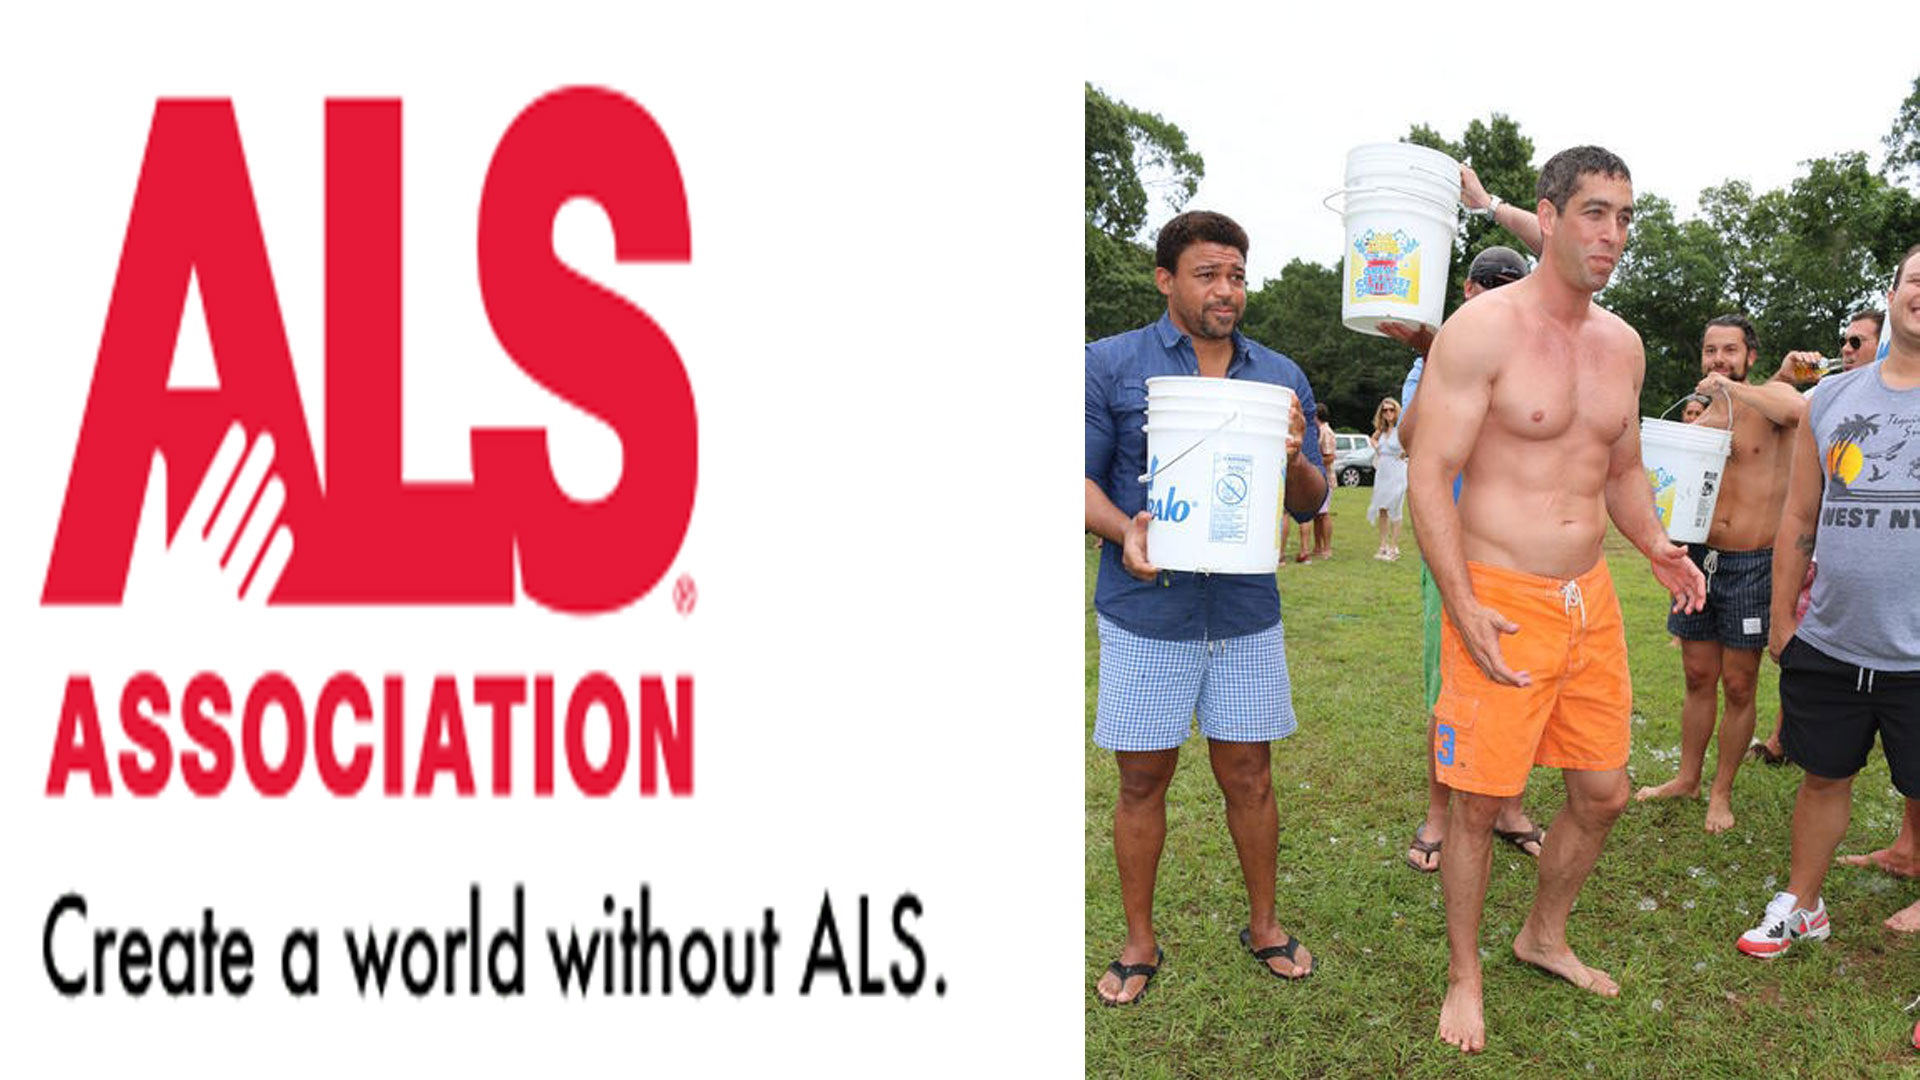 Nick Loeb's Charity Pool Party & ALS Ice Bucket Challenge Event